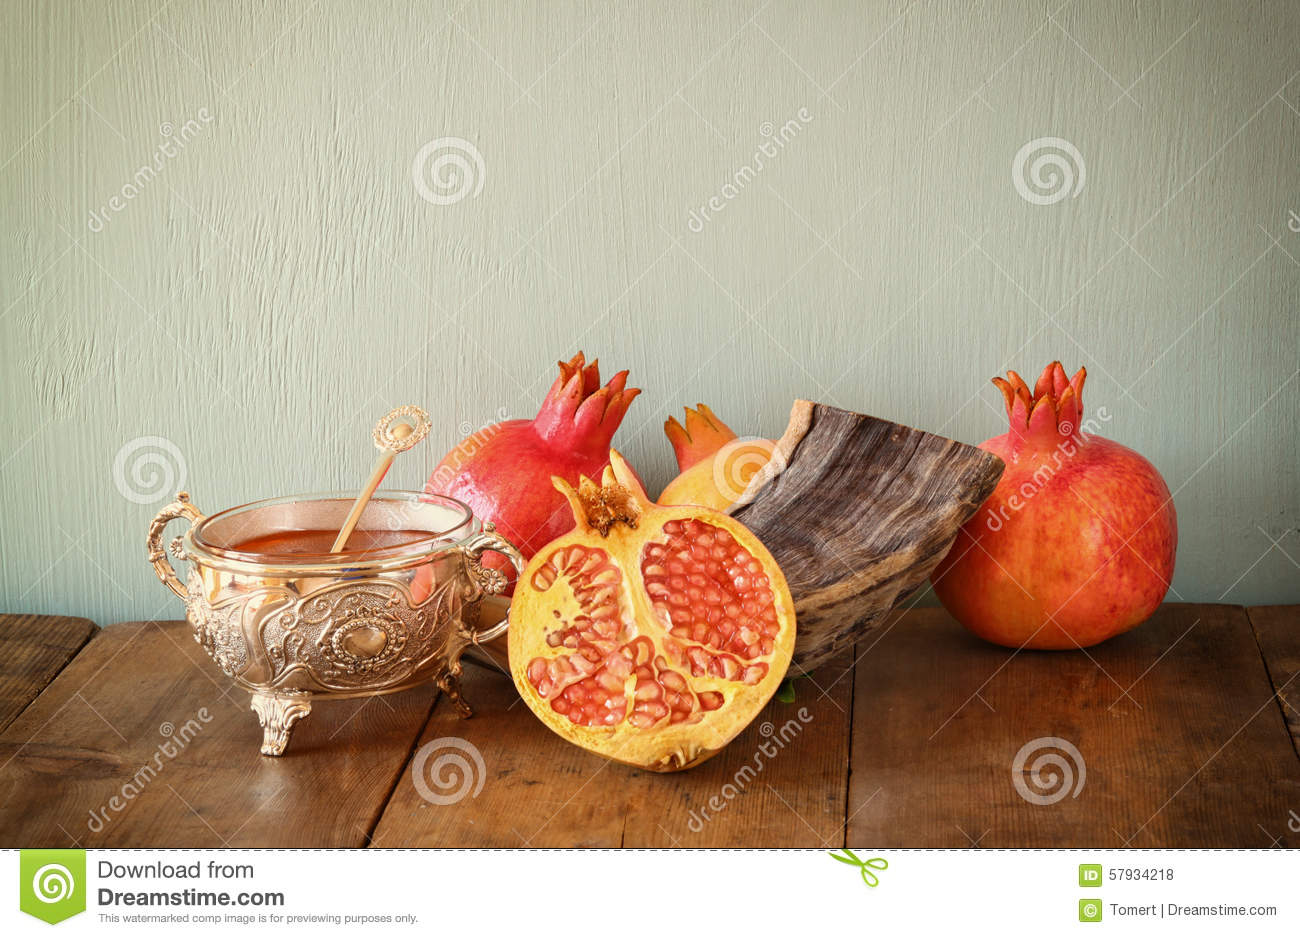 Rosh hashanah (jewesh holiday) concept - shofar, honey, apple and pomegranate over wooden table. traditional holiday symbols.